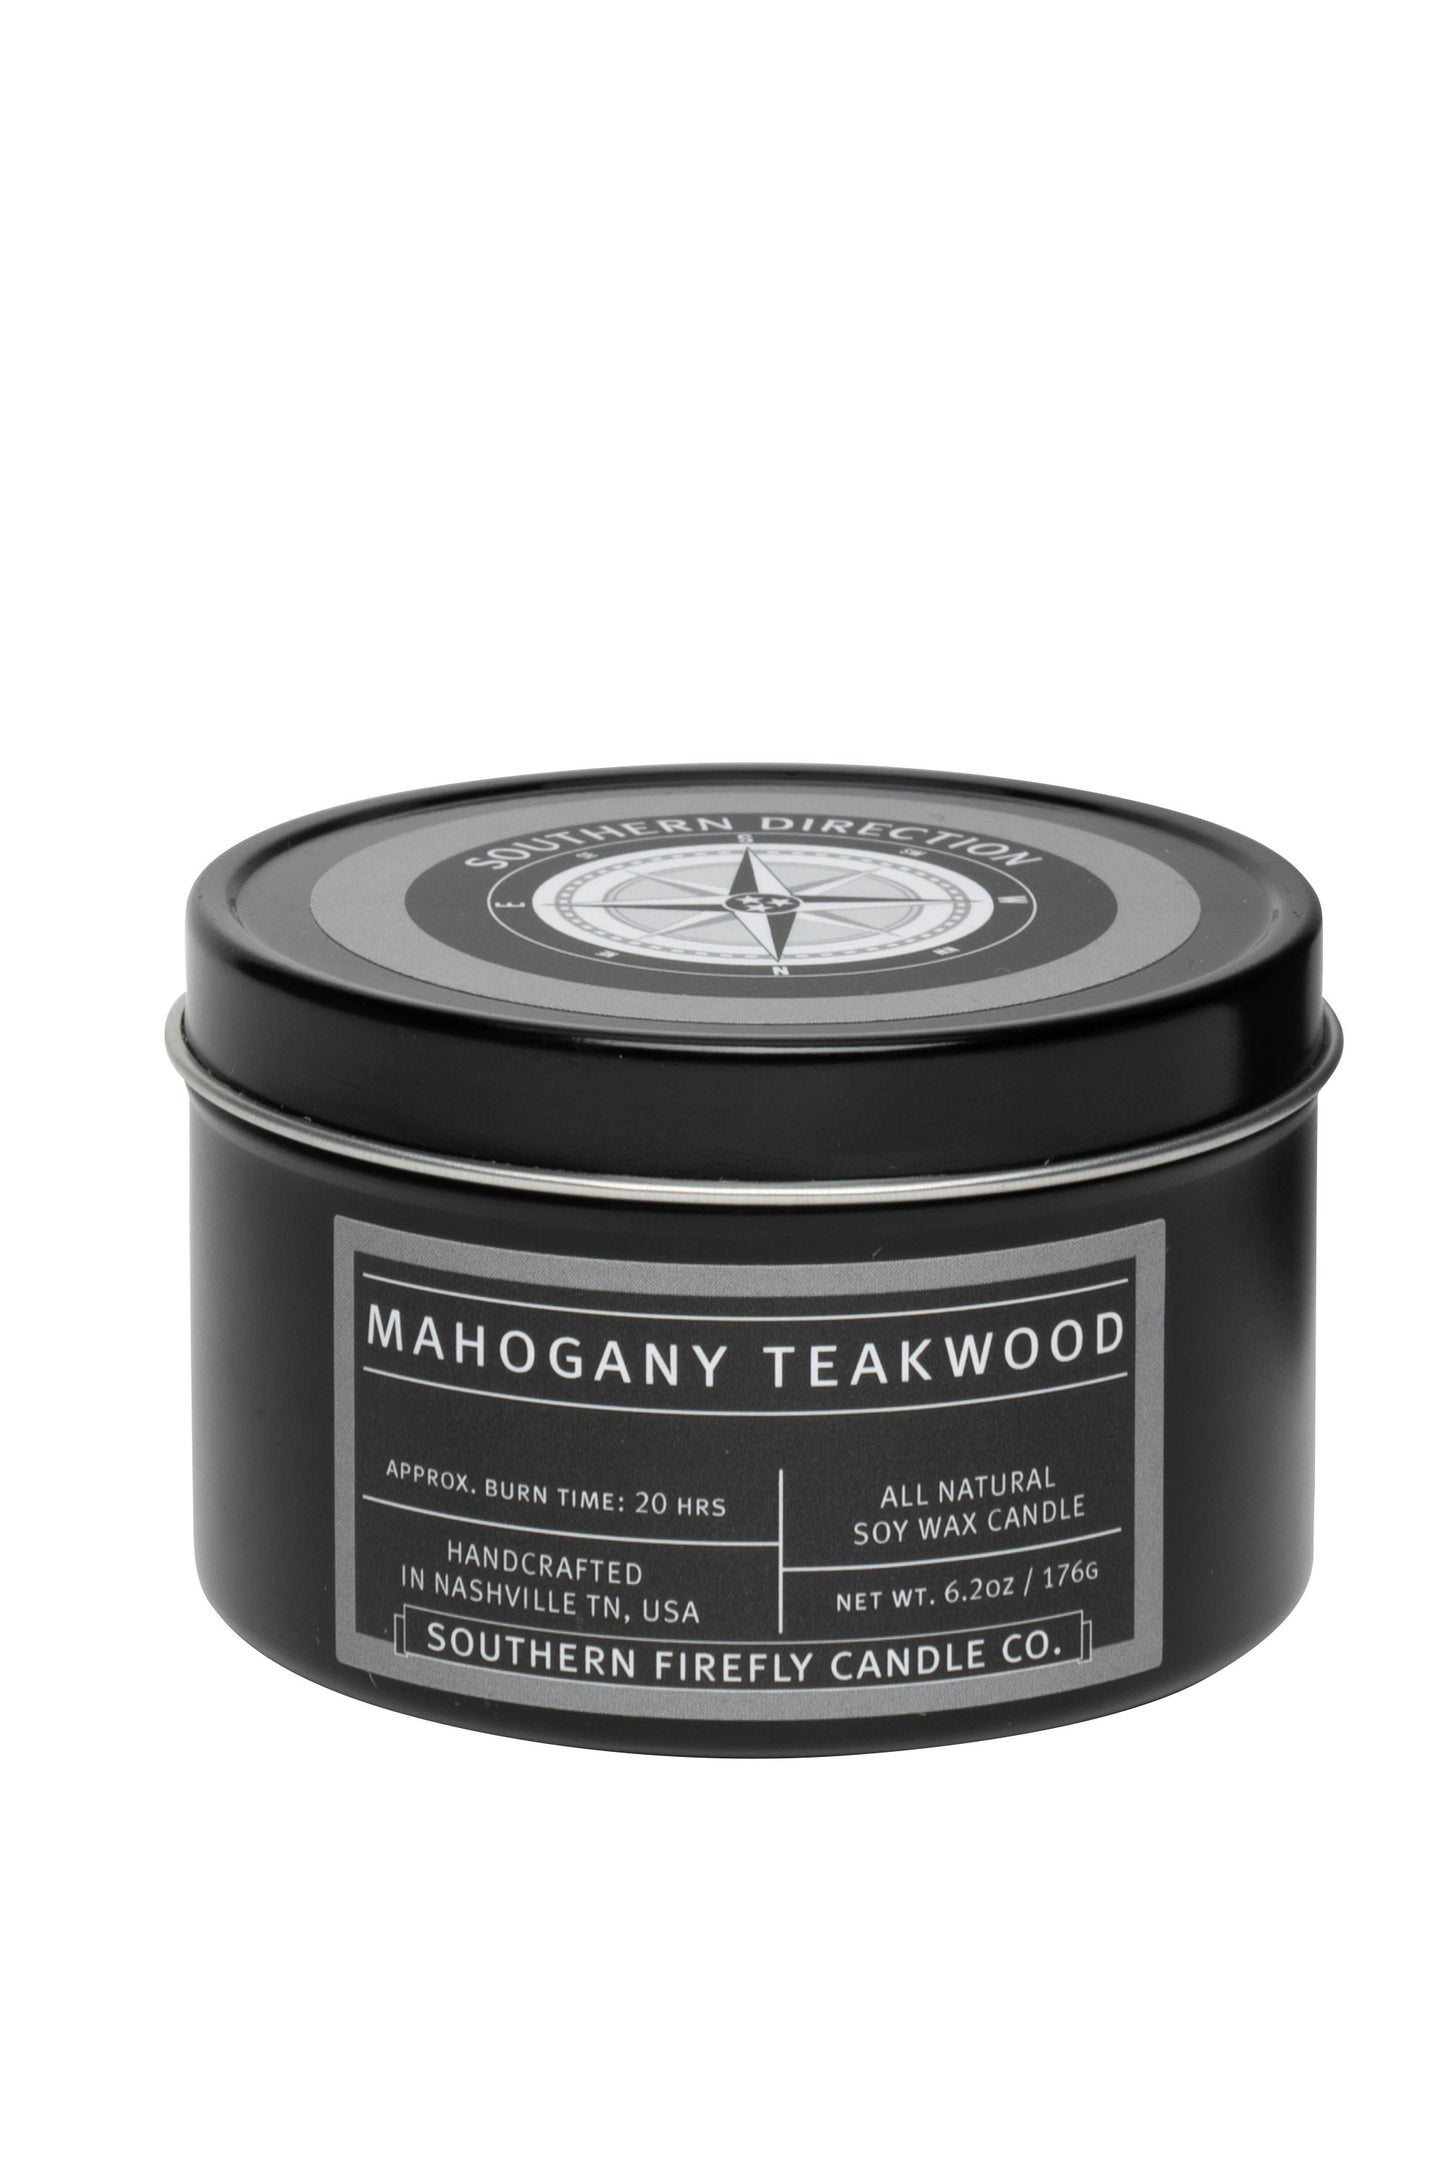 A fabulous blend of mahogany, cedar wood and oak, with top notes of fresh lavender and geranium. This is a true scent of a